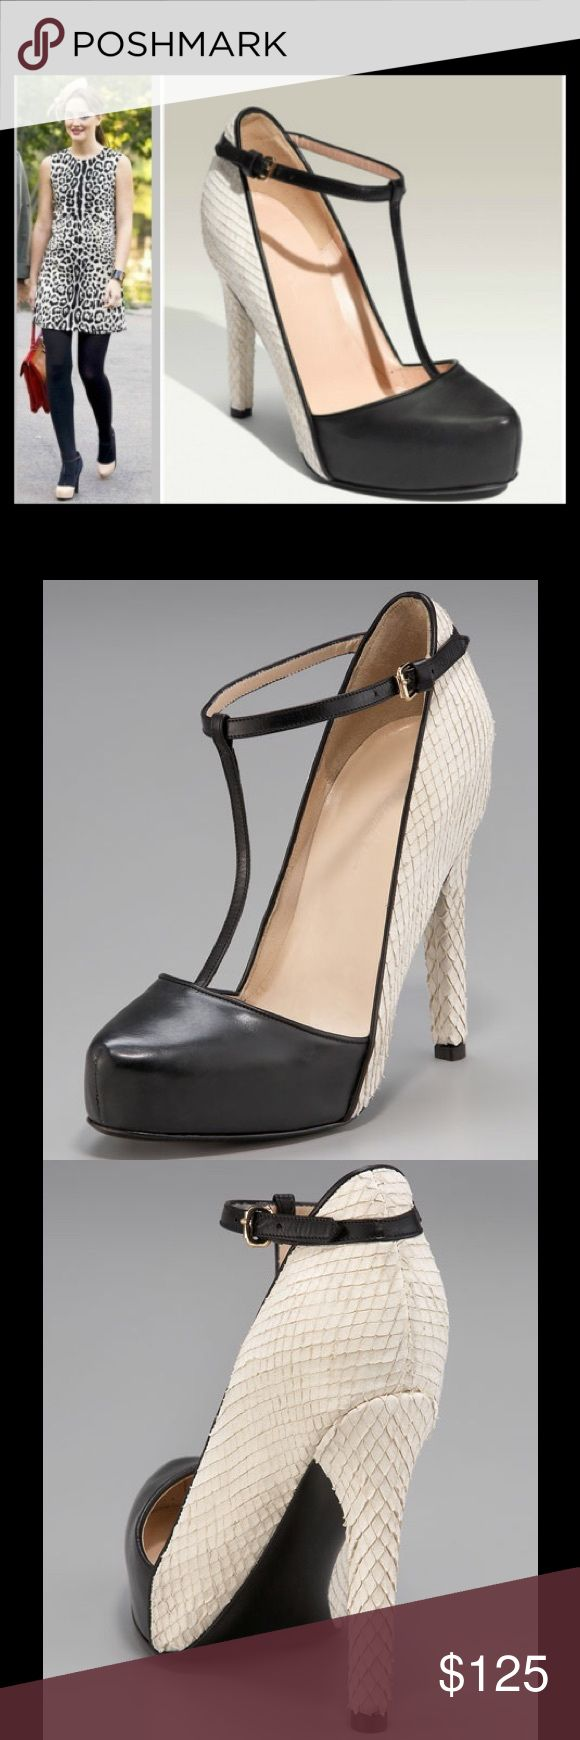 3.1 Phillip Lim Black Multi Calder T-Strap Pump Excellent like new condition. 3.1 Phillip Lim reinterprets the classic spectator pump with several notable twists: equipping it with a platform for added height, a T-strap to secure dipped construction, and juxtaposing textures in addition to colors. Leather T-strap, pointed-toe front with snake-embossed leather shank, back, and heel. Seam defines concealed platform. Adjustable buckle. Covered heel. No box. Size 37. 3.1 Phillip Lim Shoes…